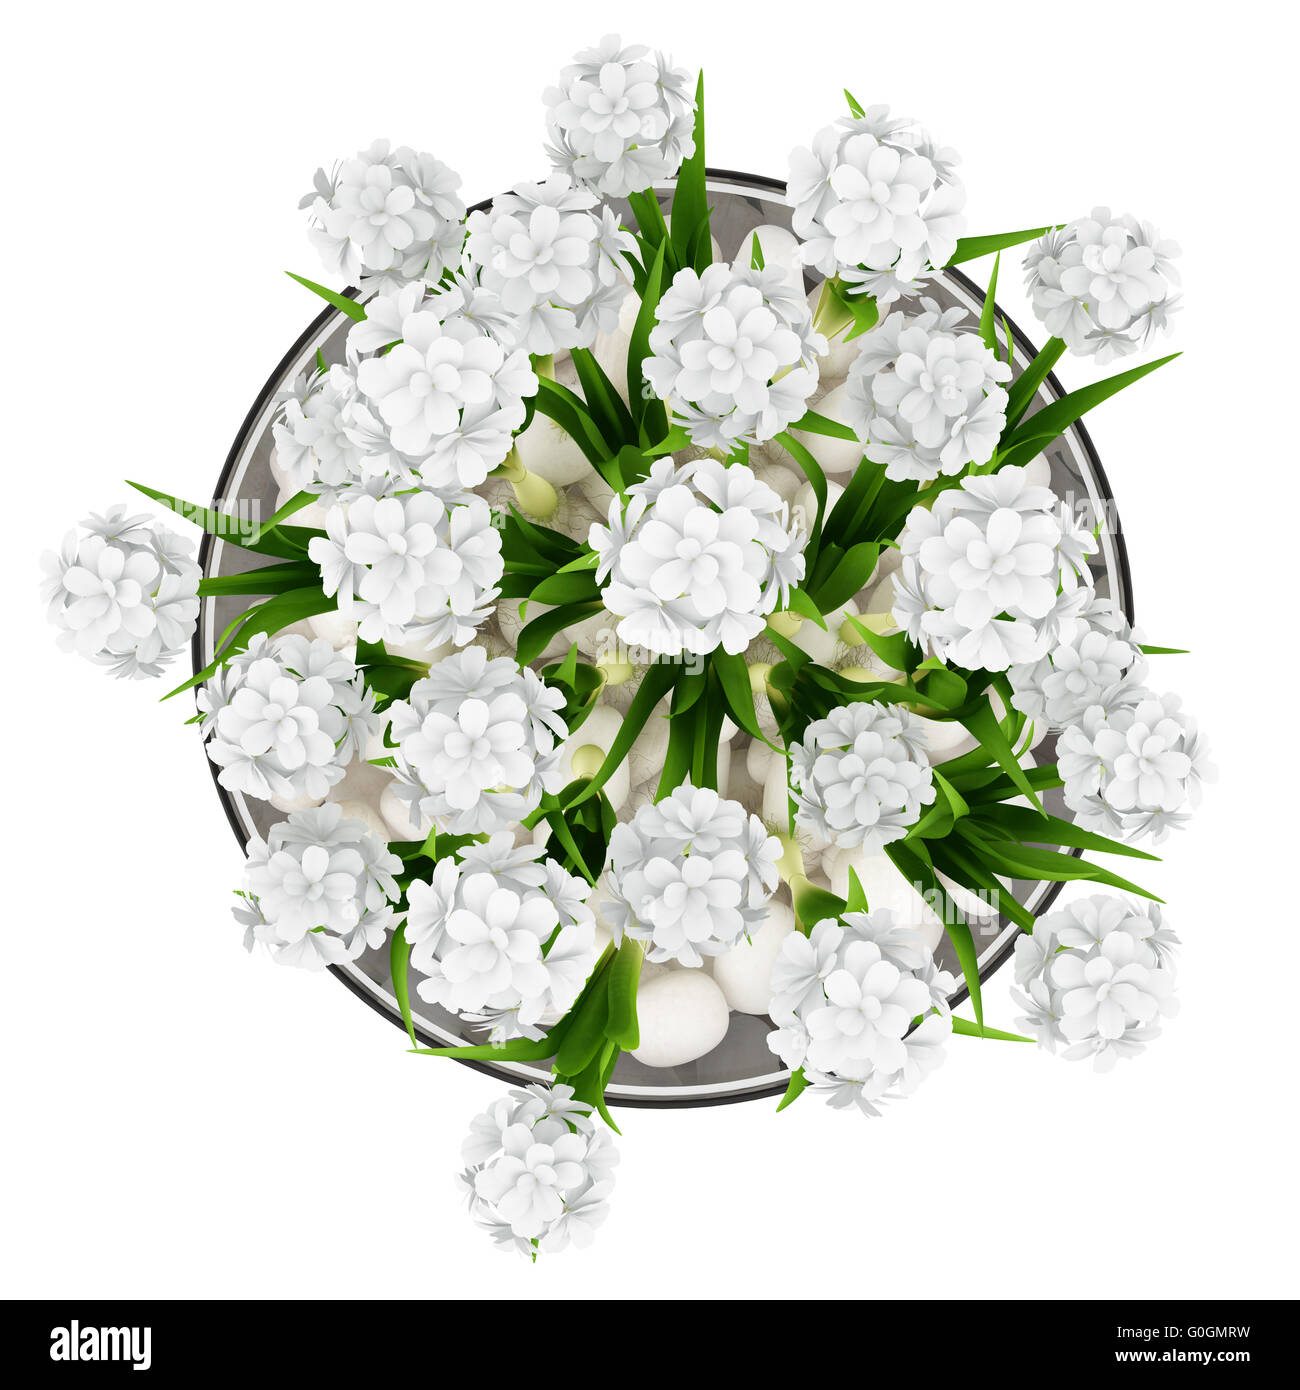 Top view of flowers in glass vase isolated on white background top view of flowers in glass vase isolated on white background reviewsmspy